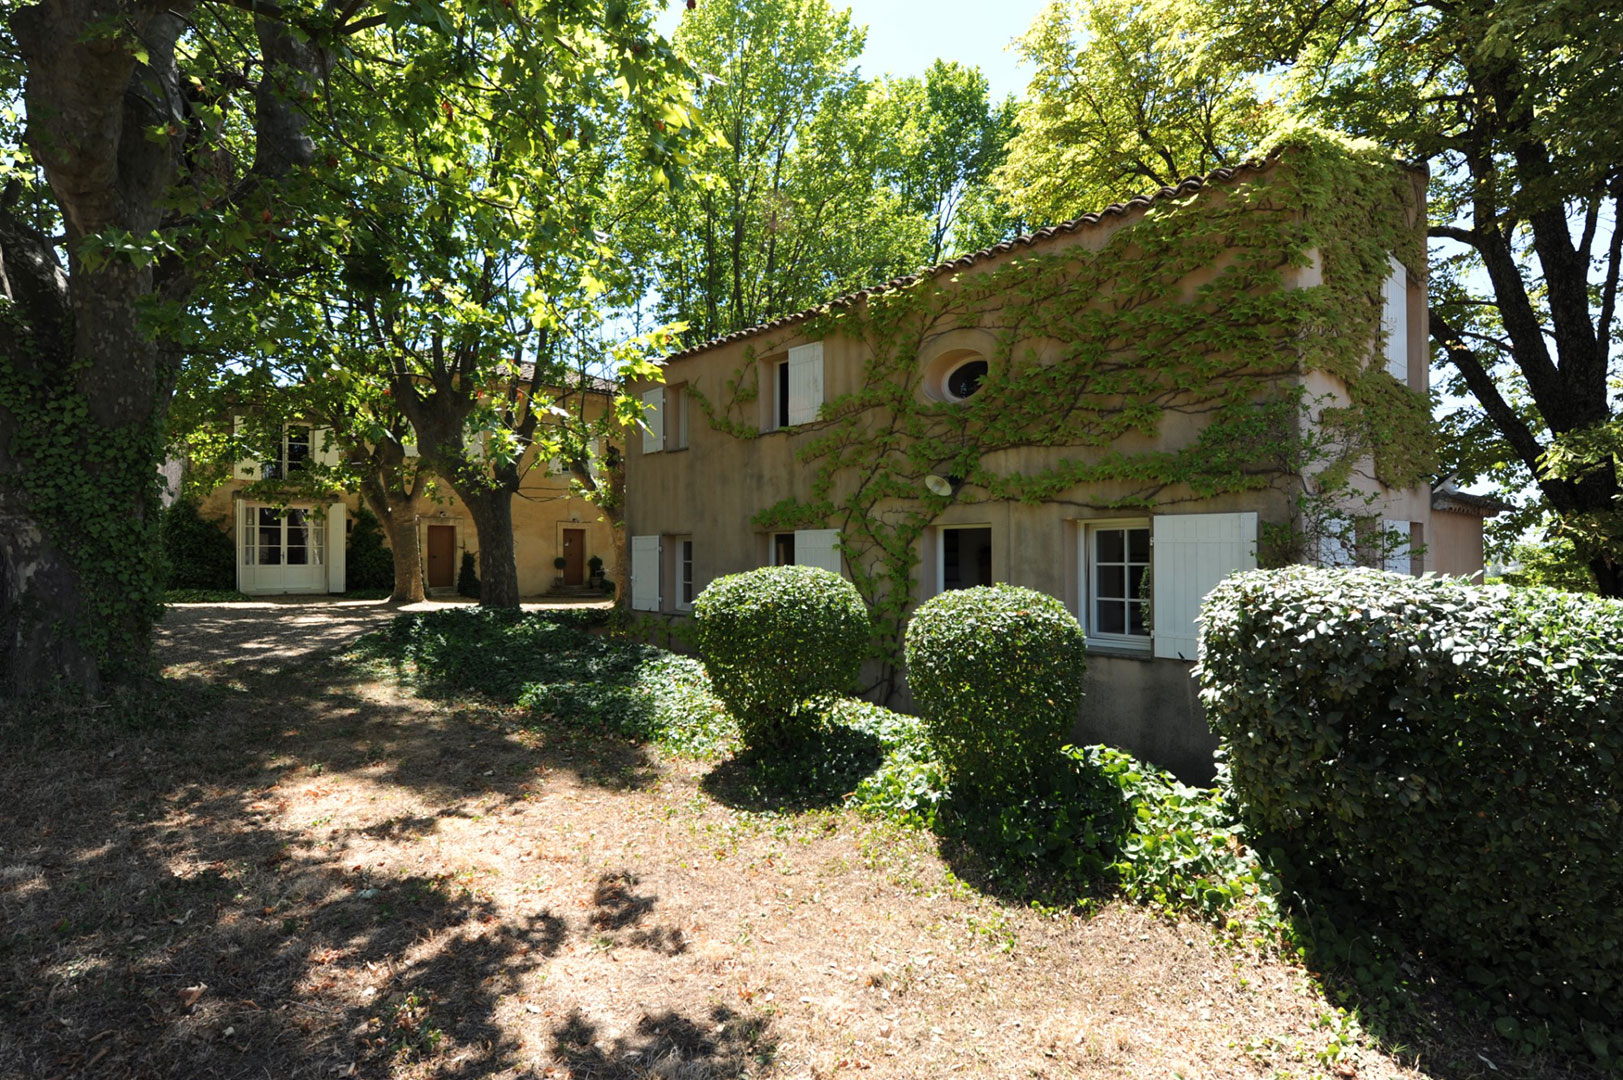 Provençal country house with swimming pool for sale in the heart of the Luberon